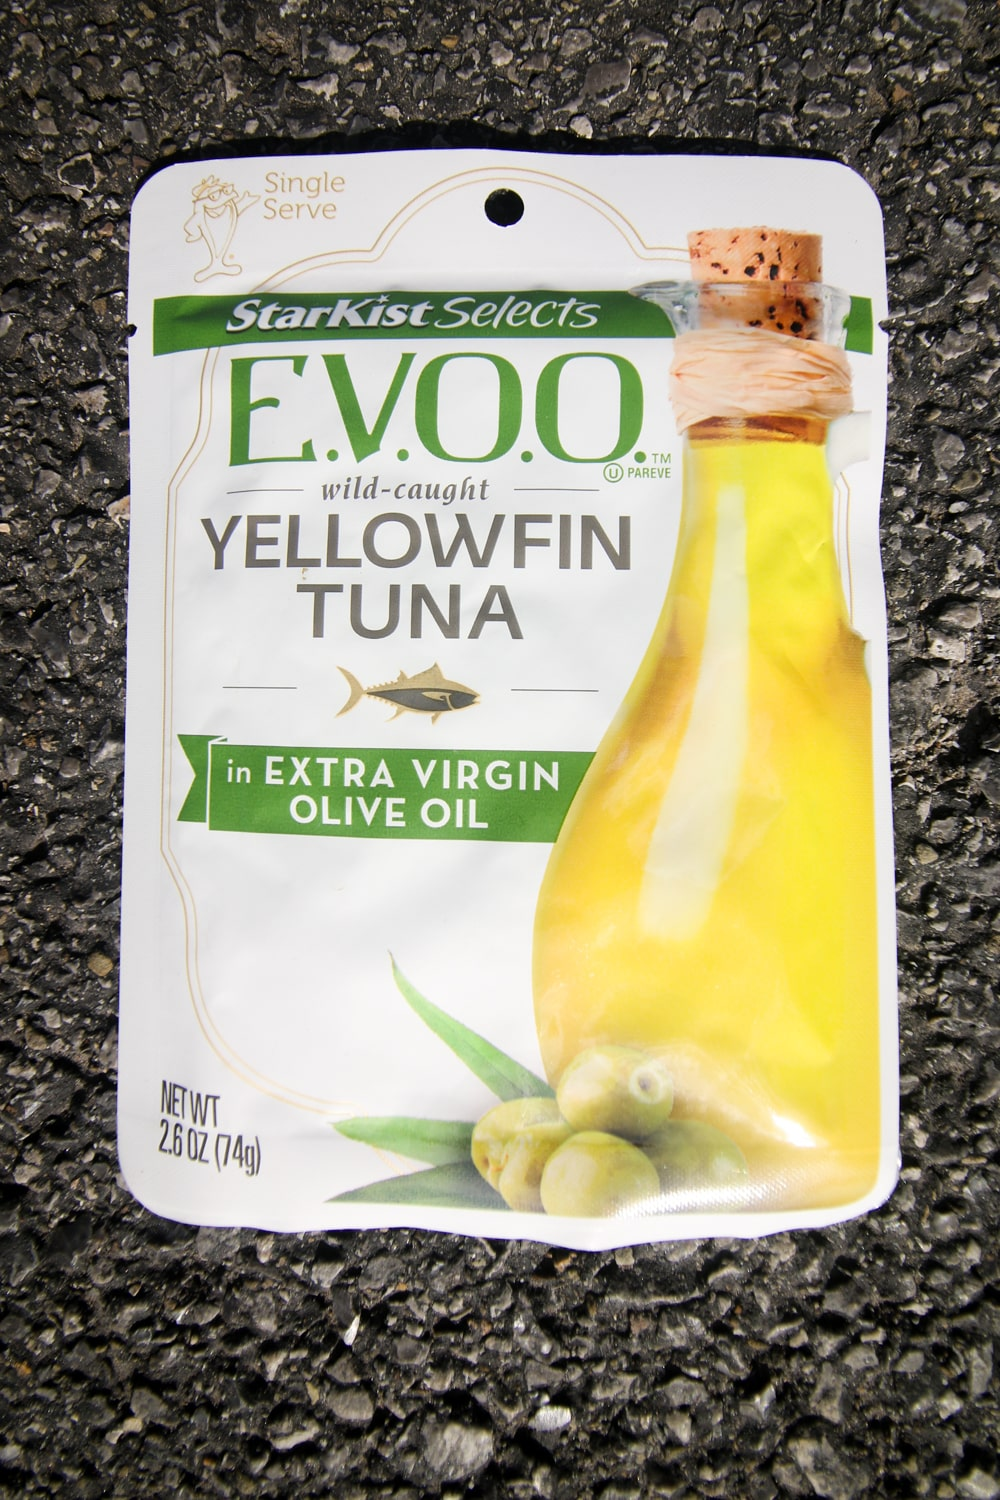 A pouch of tuna with extra virgin olive oil.